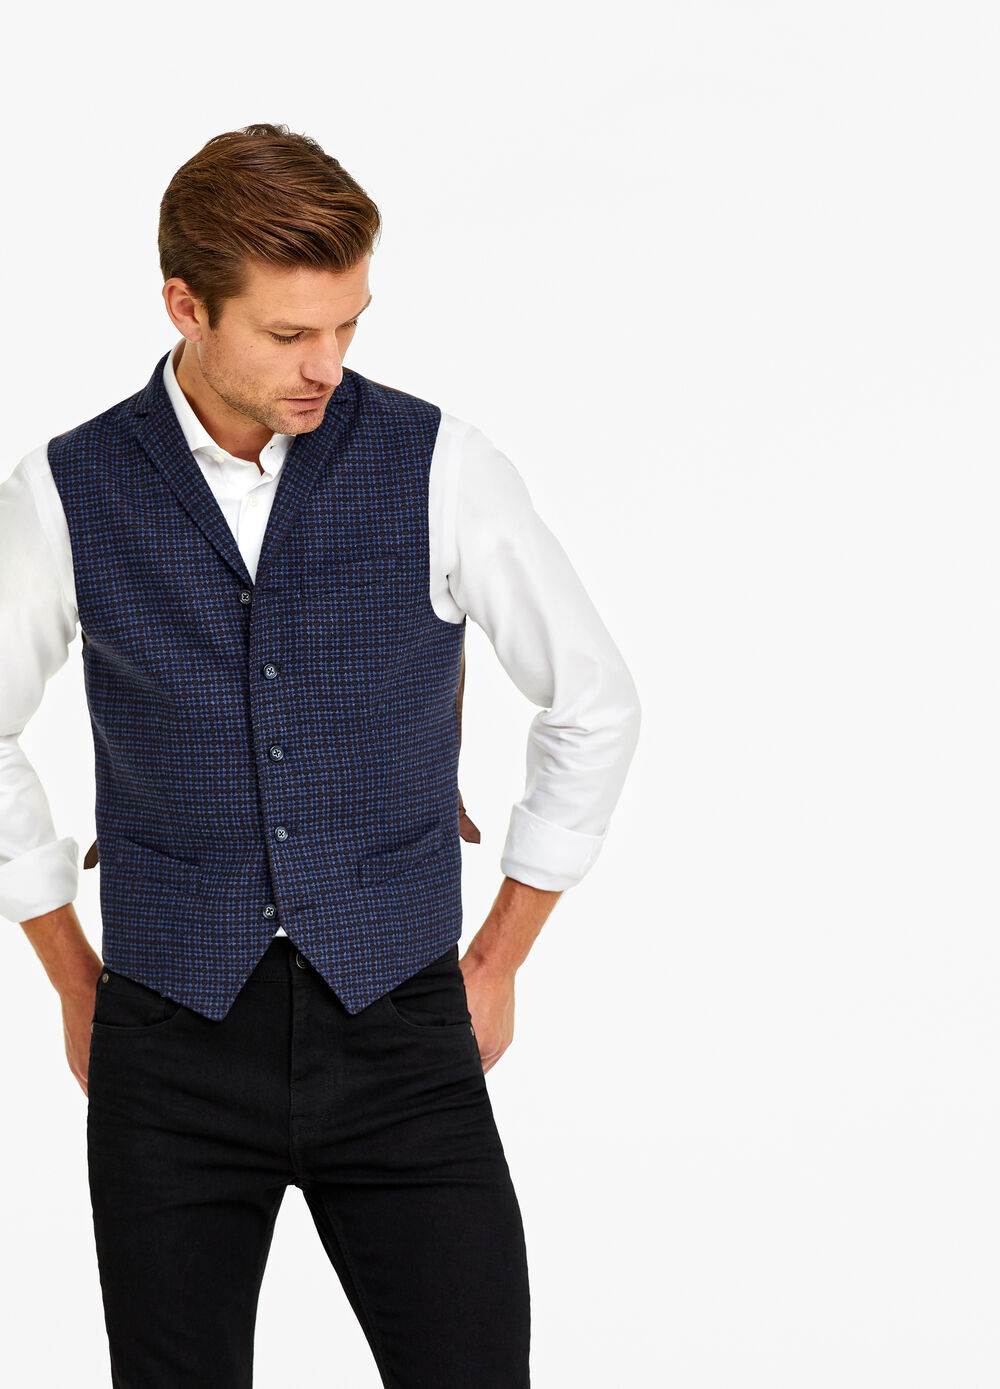 Five-button patterned gilet